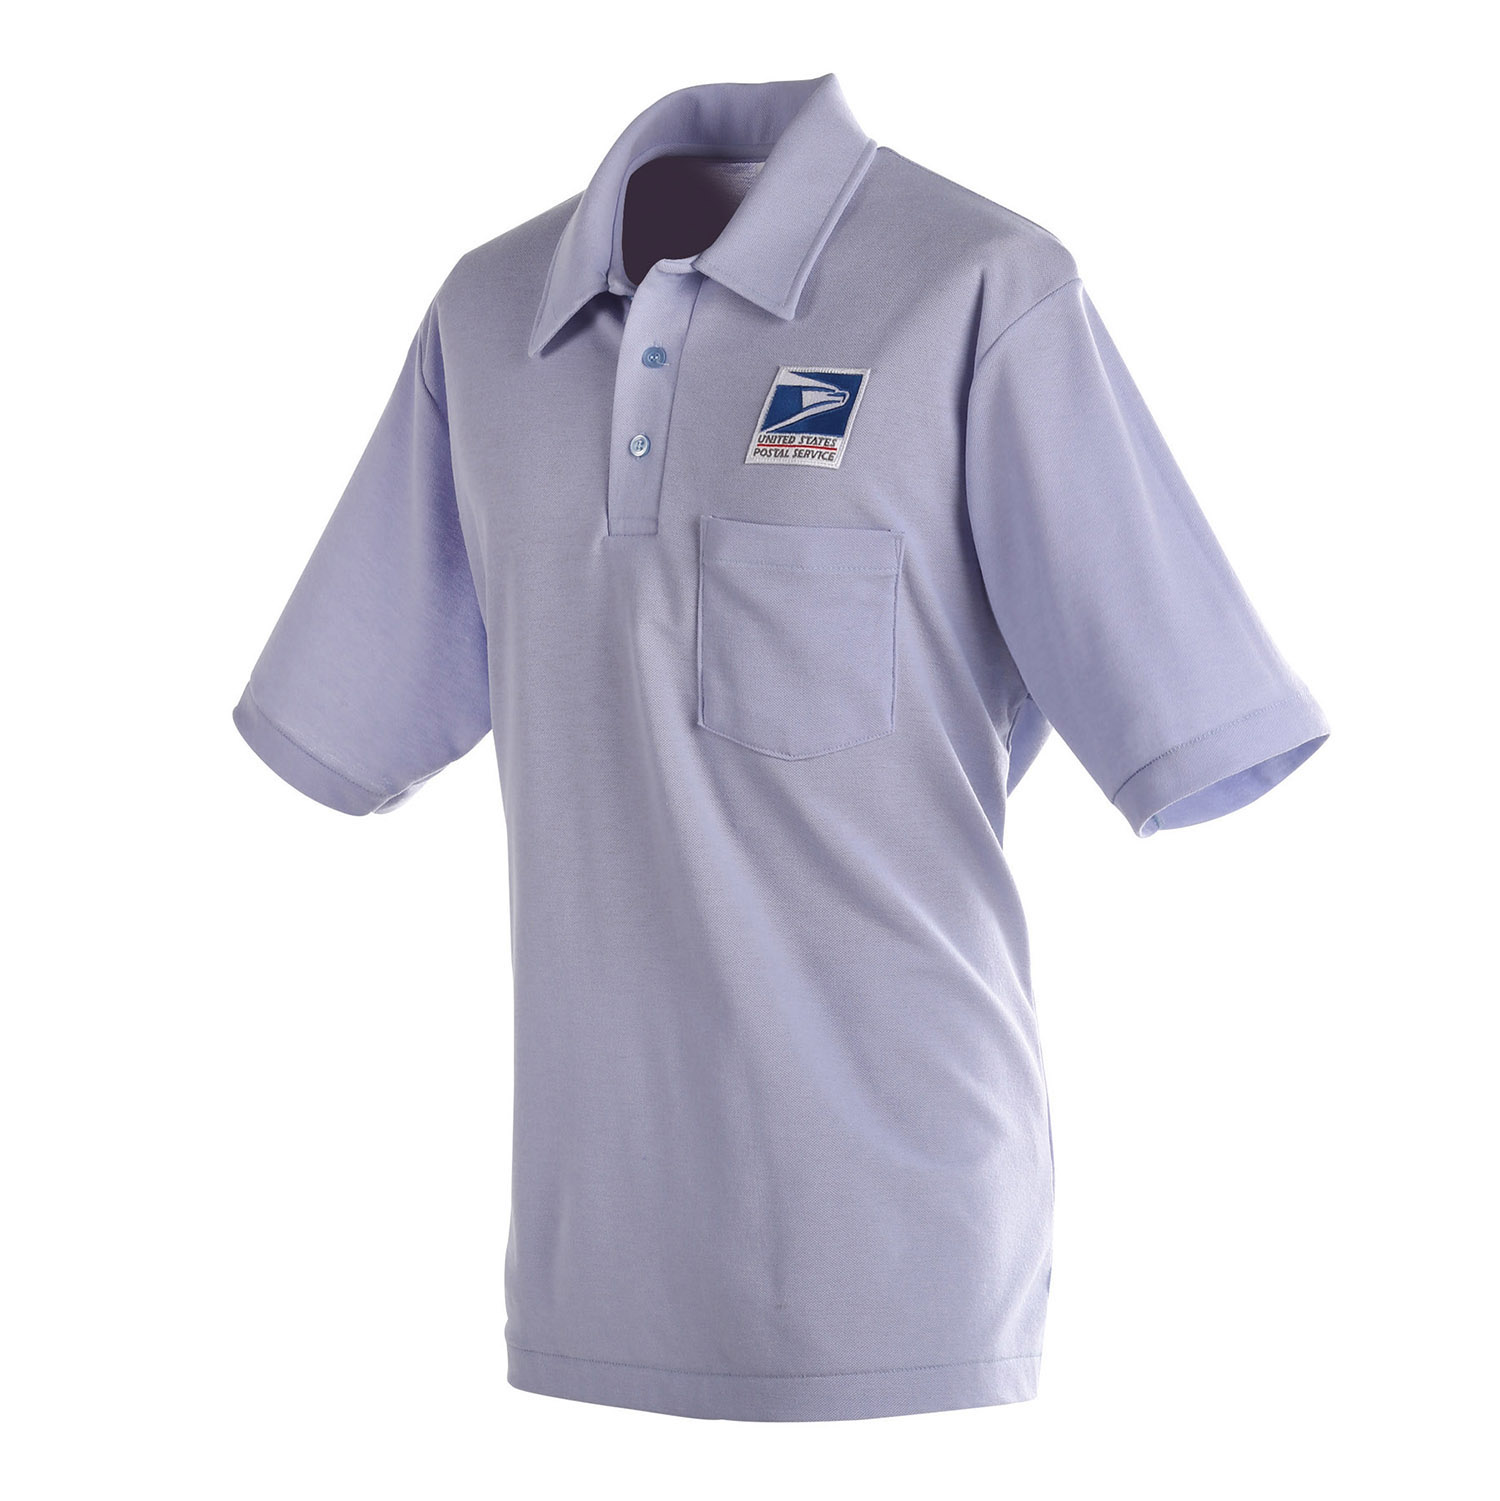 Mens knit polo shirt for letter carriers and motor vehicl for Knitted polo shirt mens